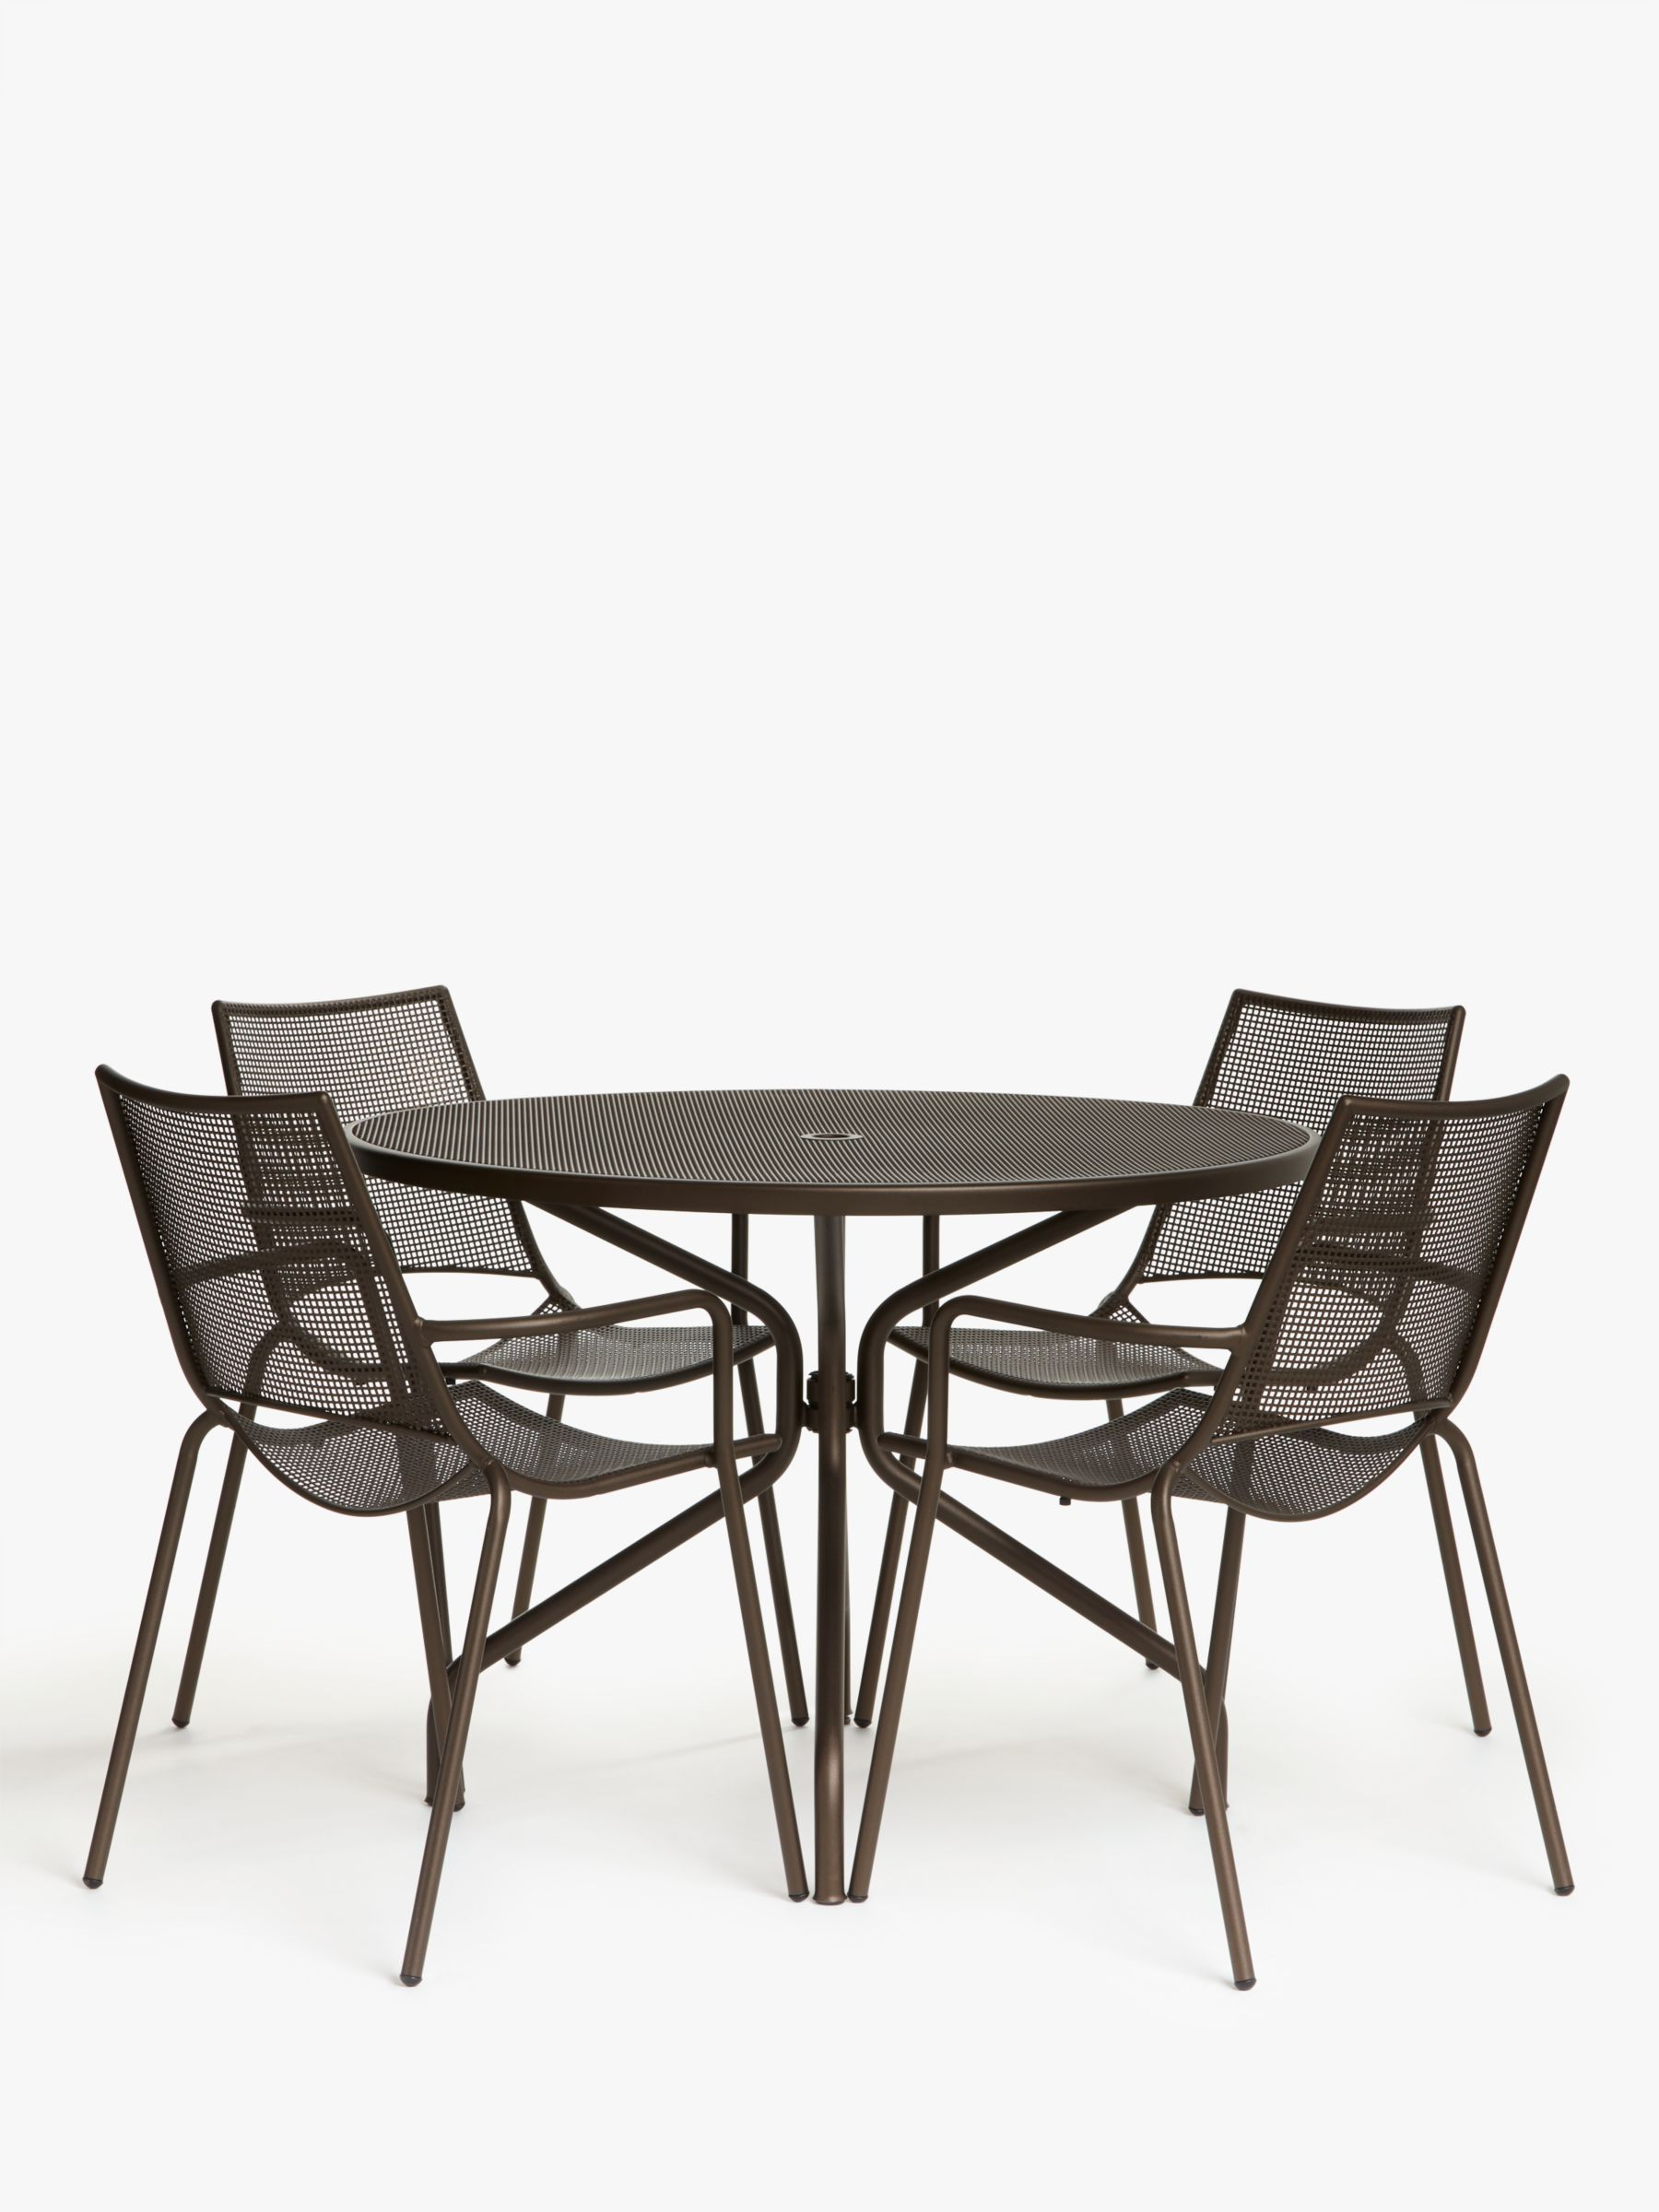 EMU Ala Mesh 4-Seat Garden Dining Table and Chairs Set, Bronze